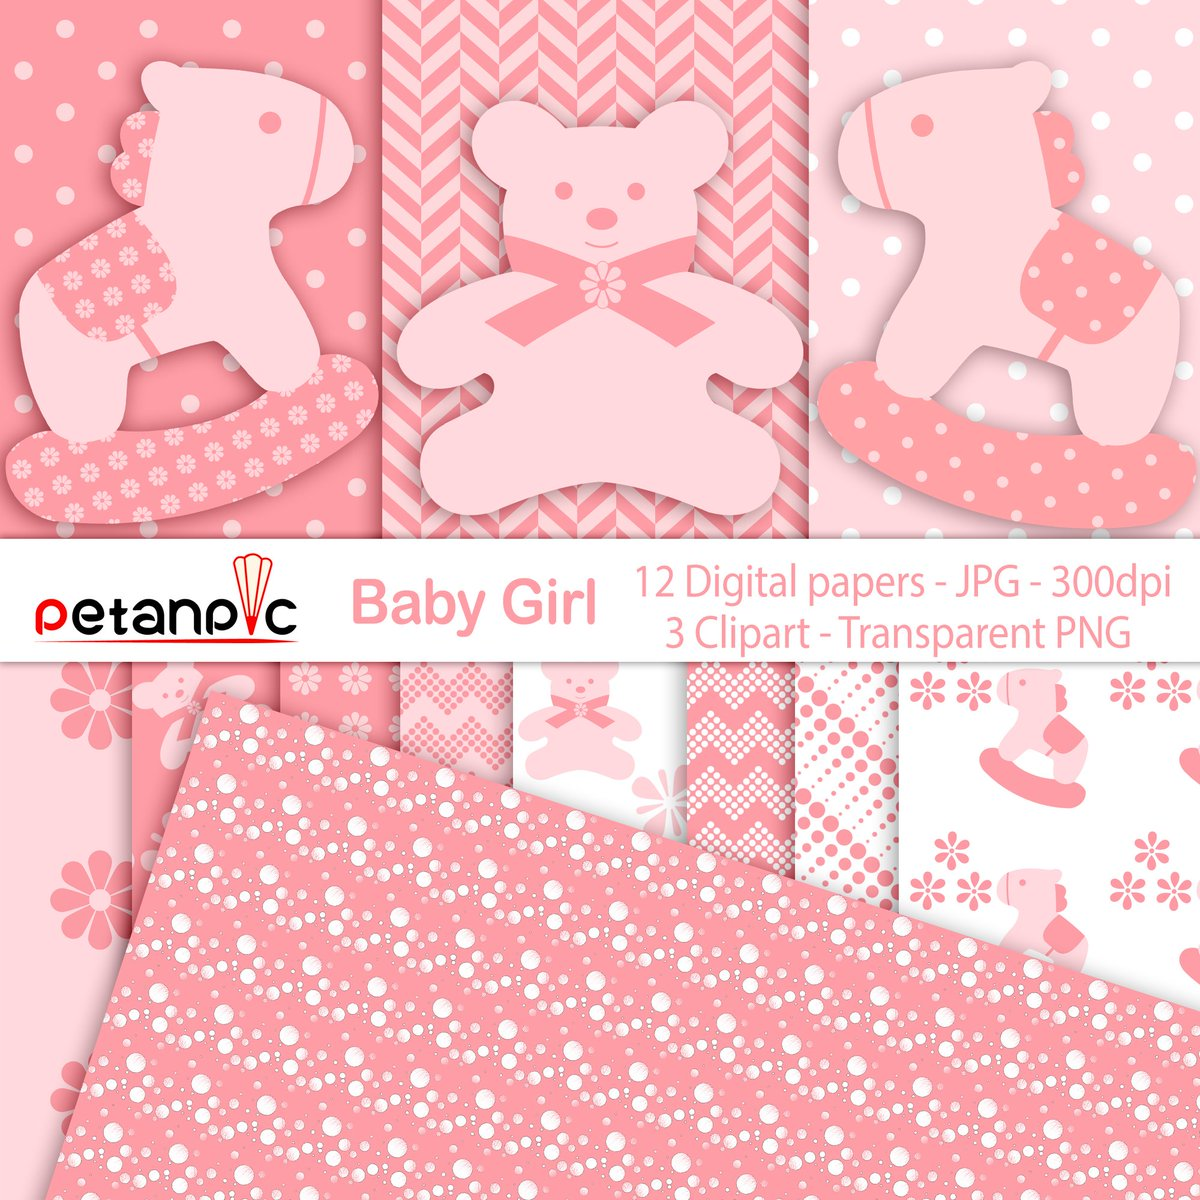 """This Baby Girl Set includes 1 ZIP file high-quality digital clipart containing: ~ 3 clip art = 2 Horses and a Bear clipart in PNG format, high resolution 300 dpi. Each PNG image measures approximately 6""""-7,5"""" (1800px - 2250px) at the widest side ~ 12 Digital Papers - JPG format - high resolution - 300 dpi - size is 12""""x12""""(3600px x 3600px) ~ All clipart are high-quality files, suitable for print or digital project"""